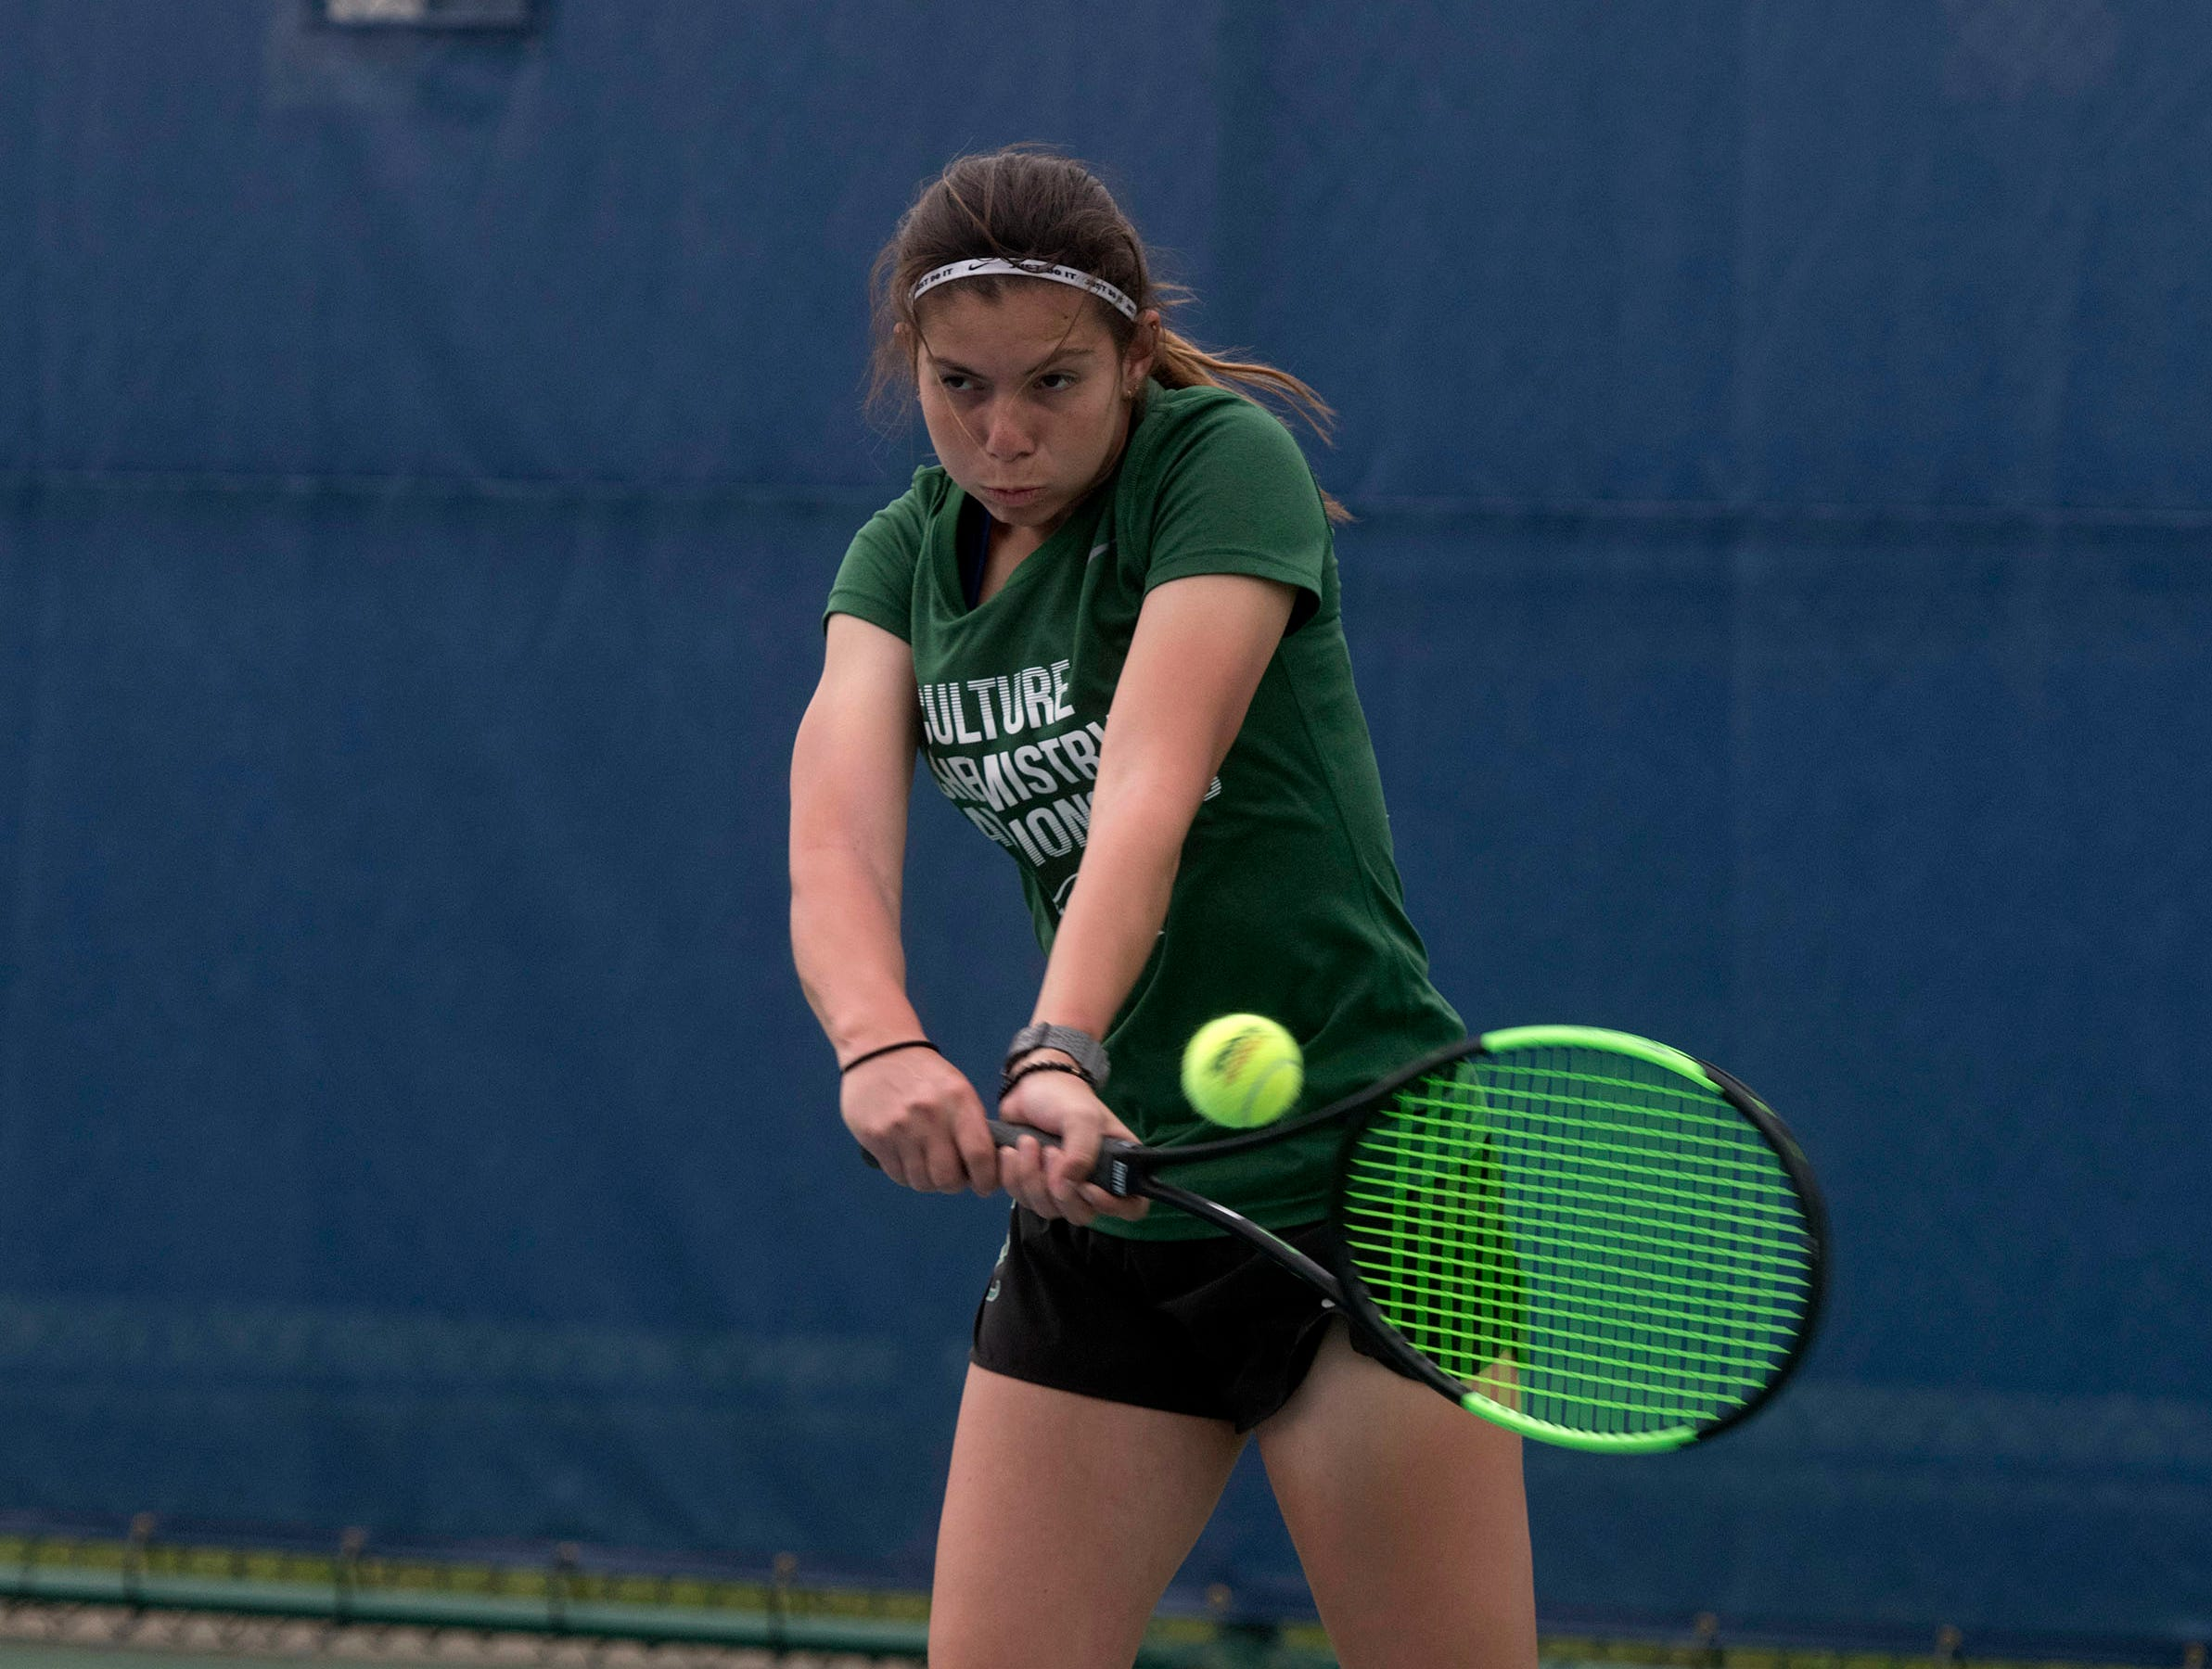 Maria Aviega from Seward County Community College, returns the serve from the Abraham Baldwin Agricultural College team during doubles play in the Western Gate Tennis Invitational tournament at UWF on Monday, March 11, 2019. Seward won the match 8-3.